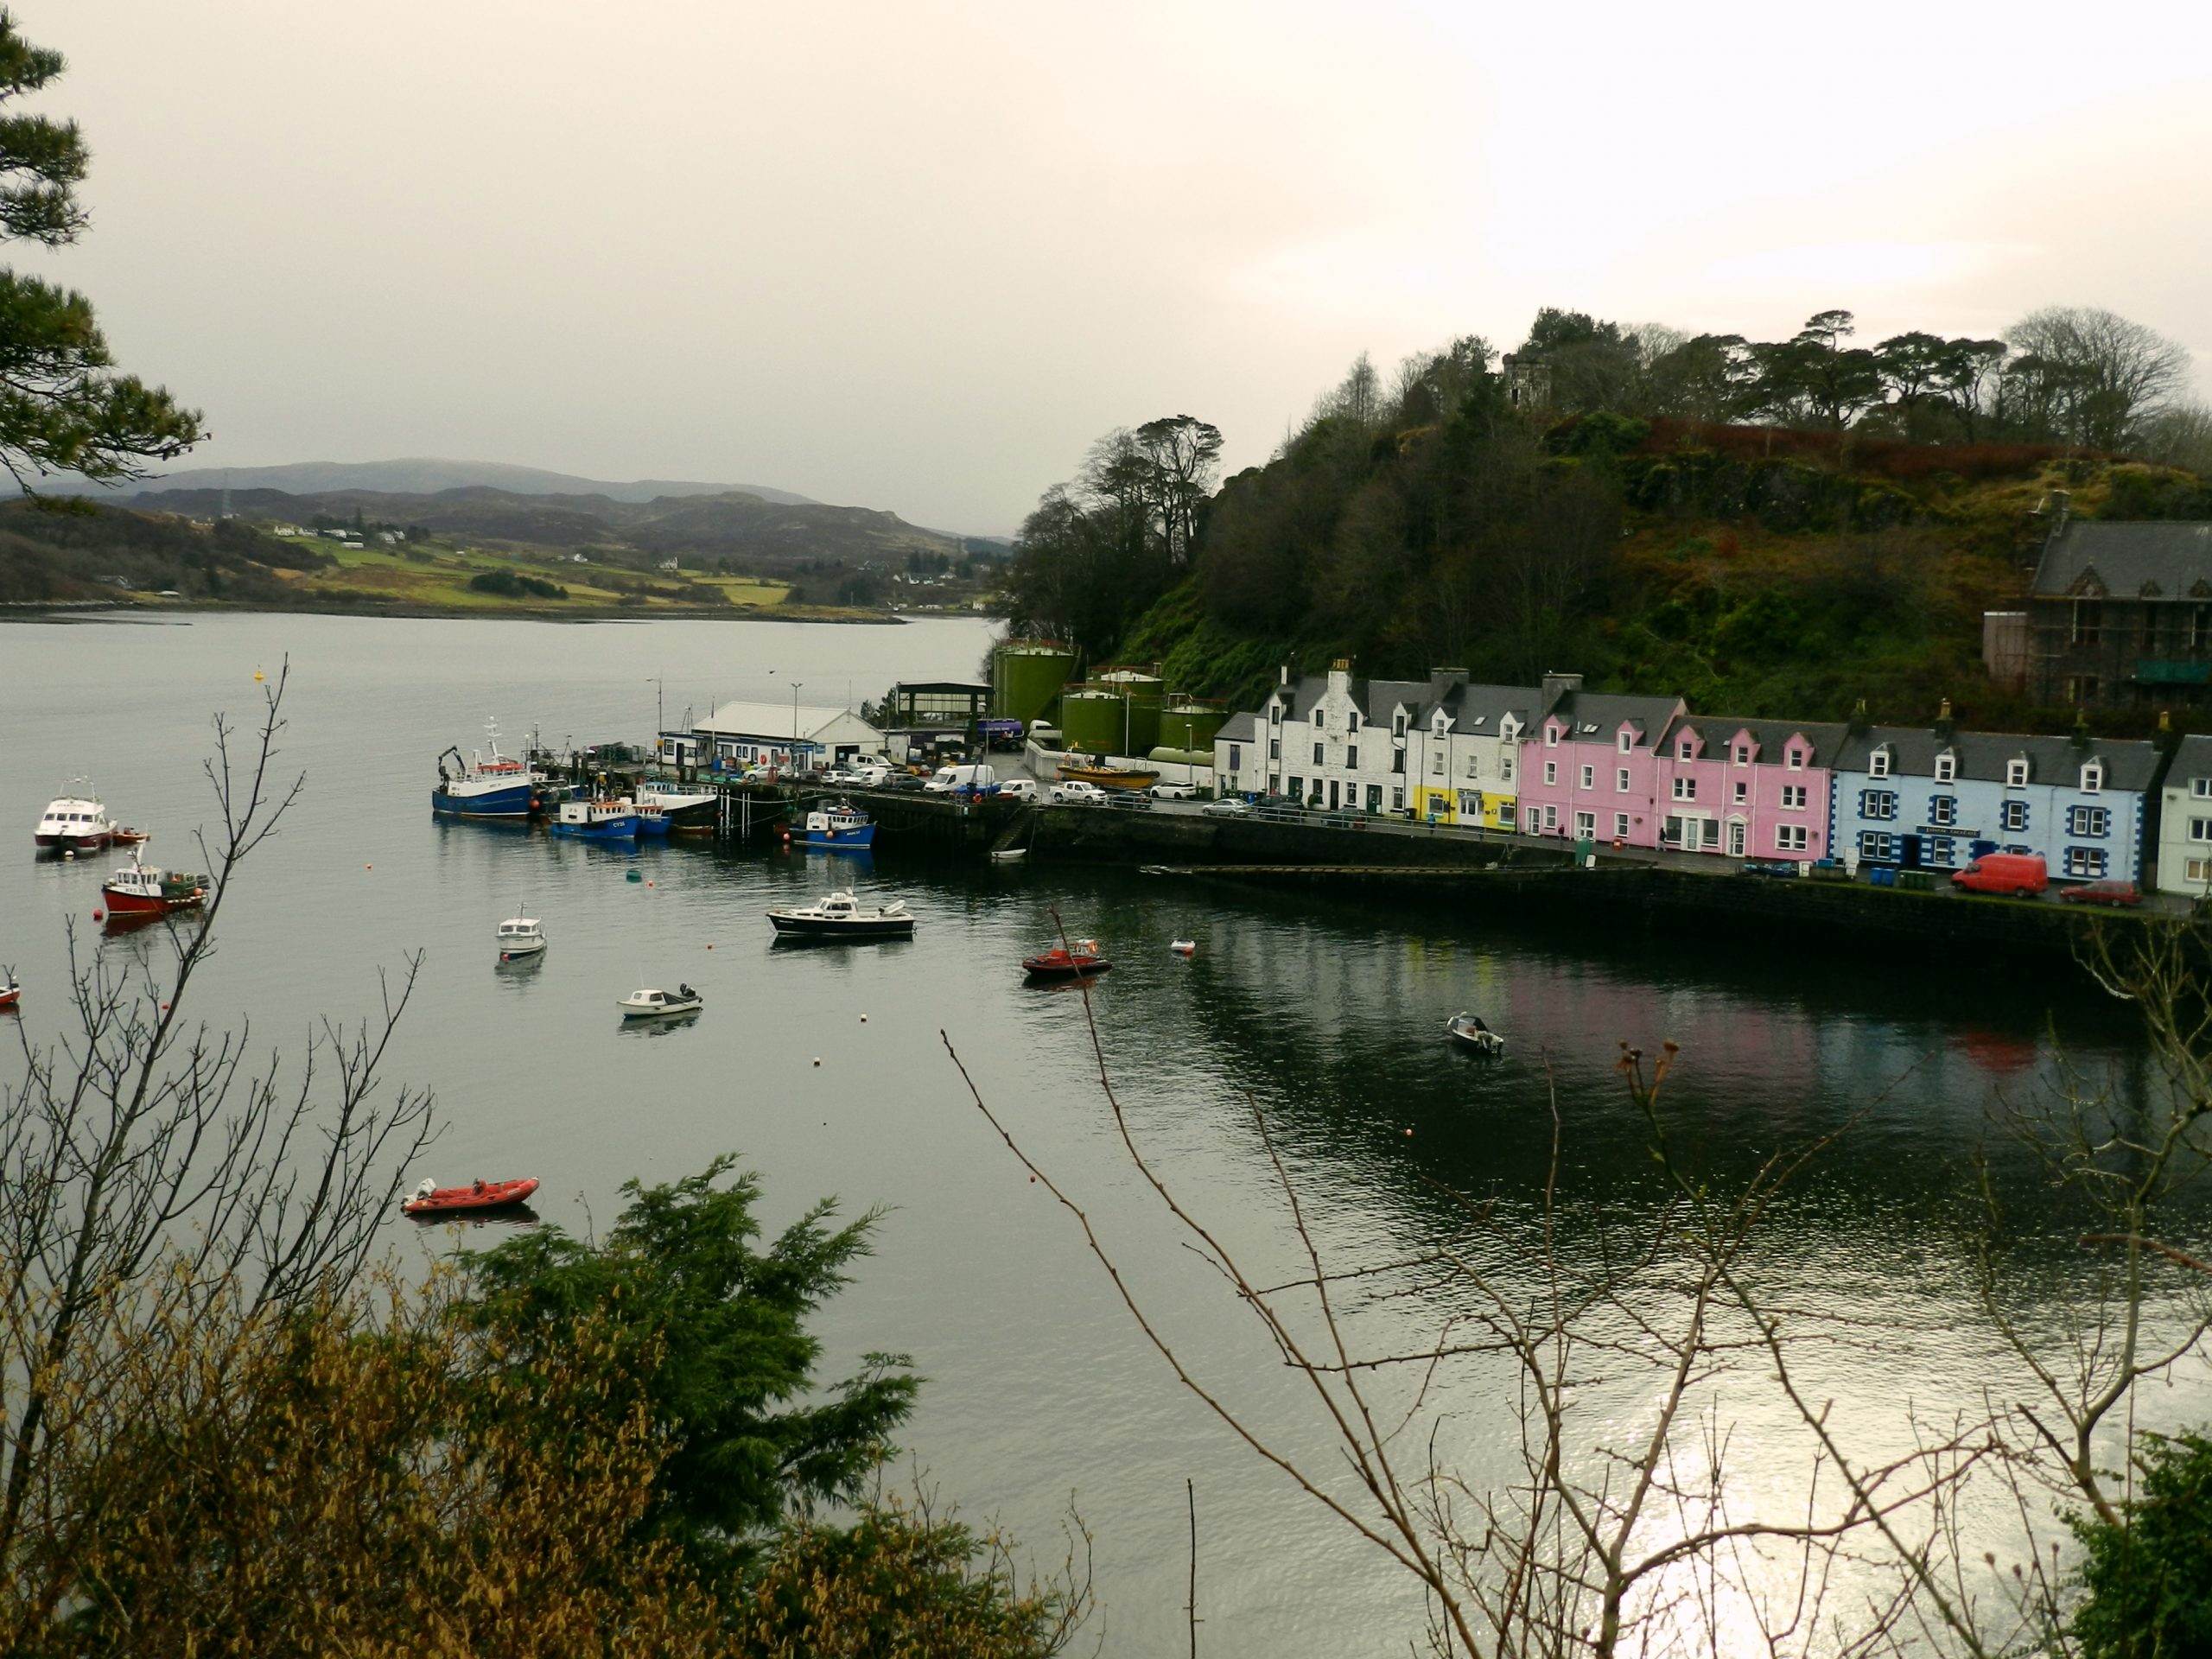 Portree: The King's Harbor and the Port on the Slope